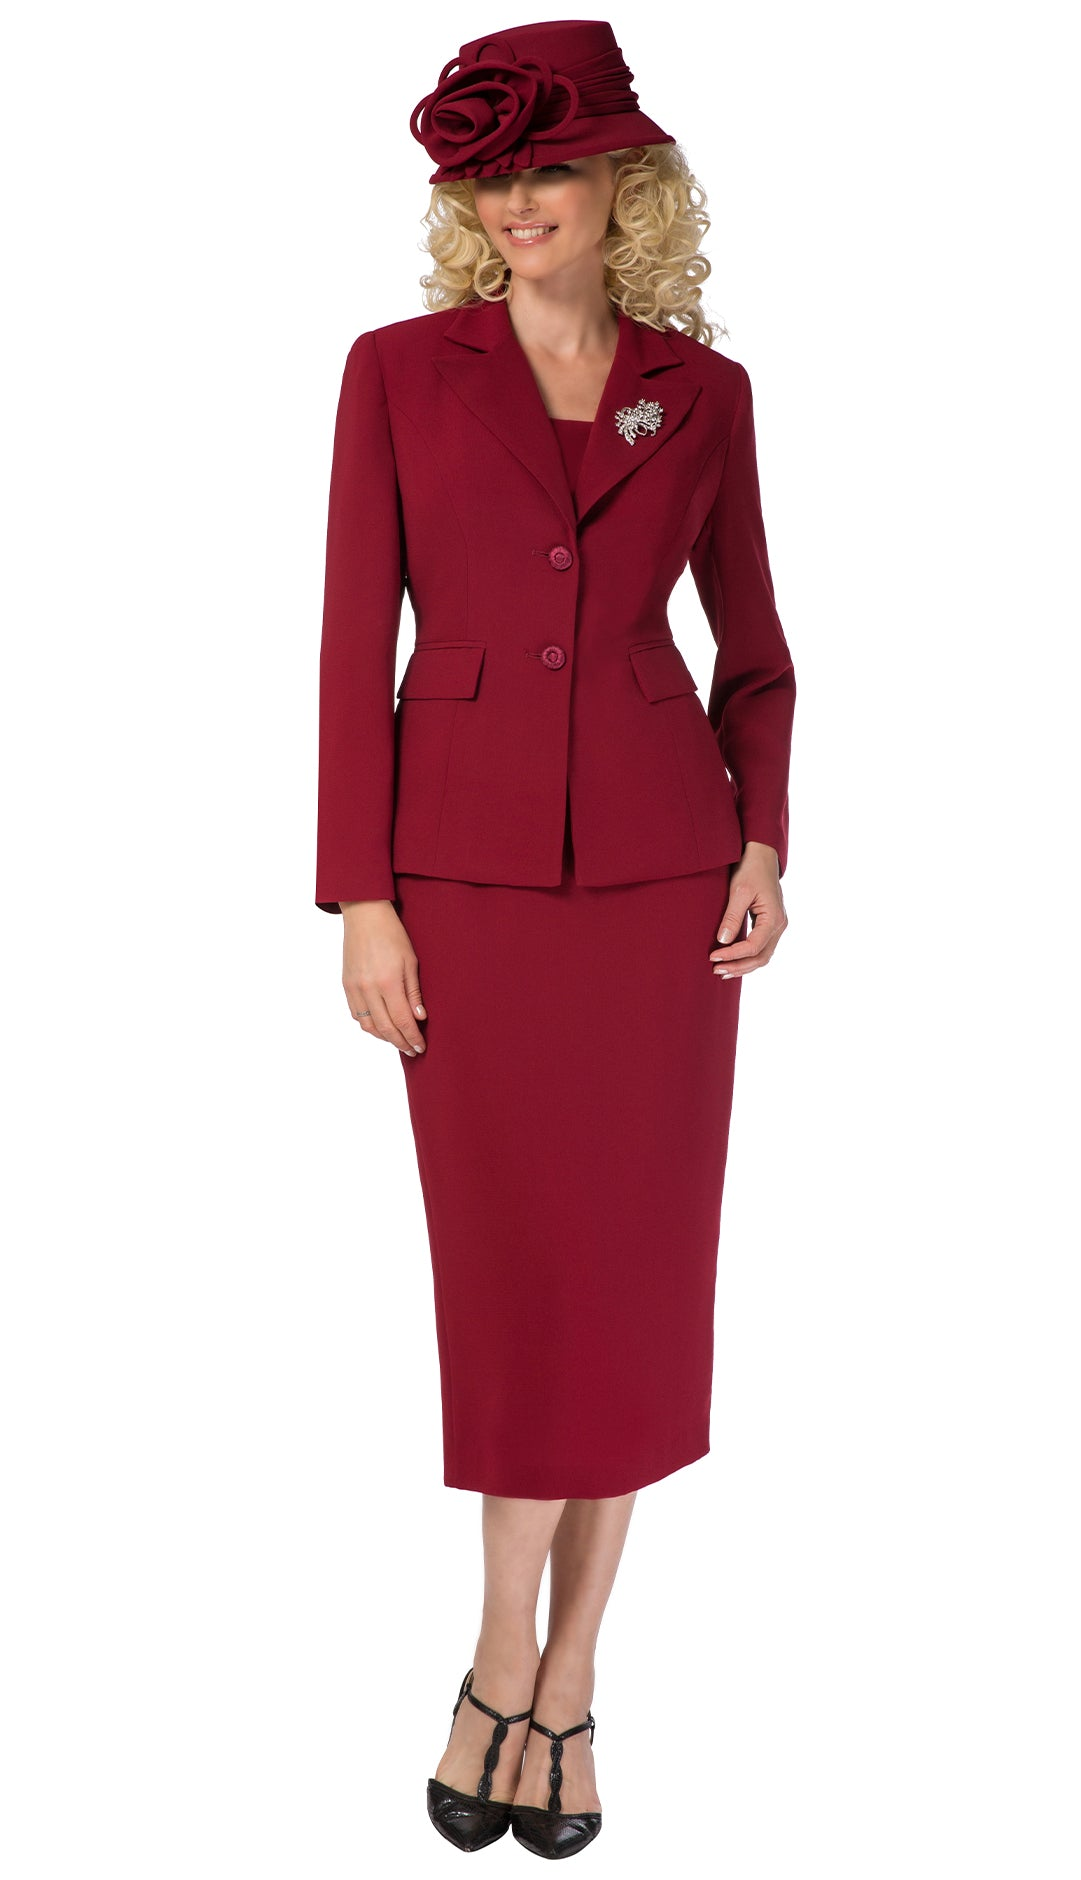 Giovanna Usher Suit 0710-Burgundy - Church Suits For Less